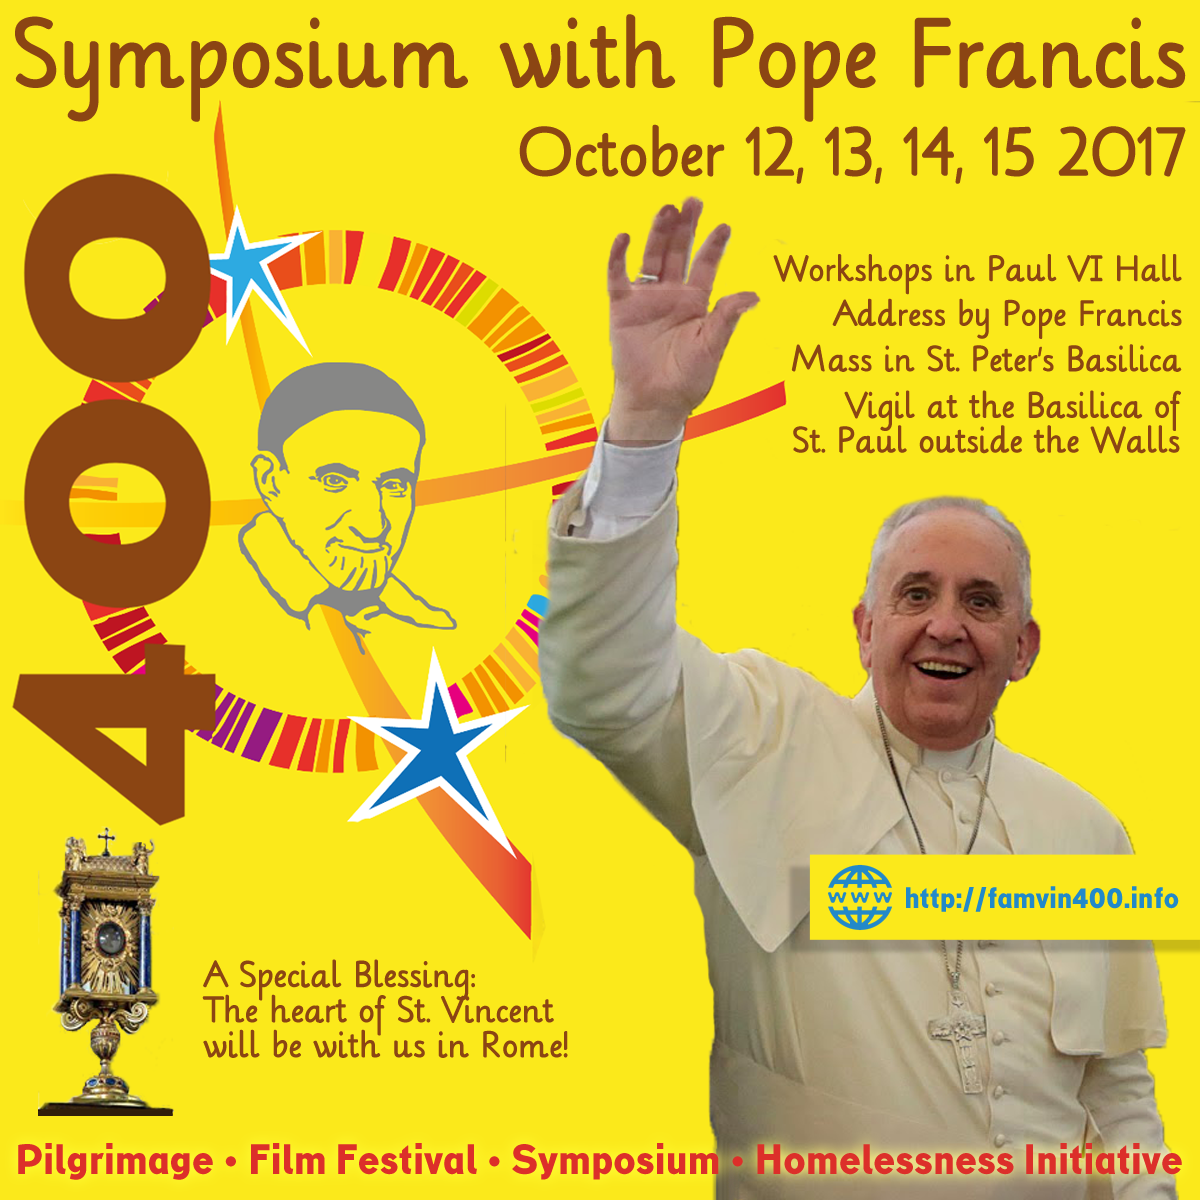 Symposium with Pope Francis